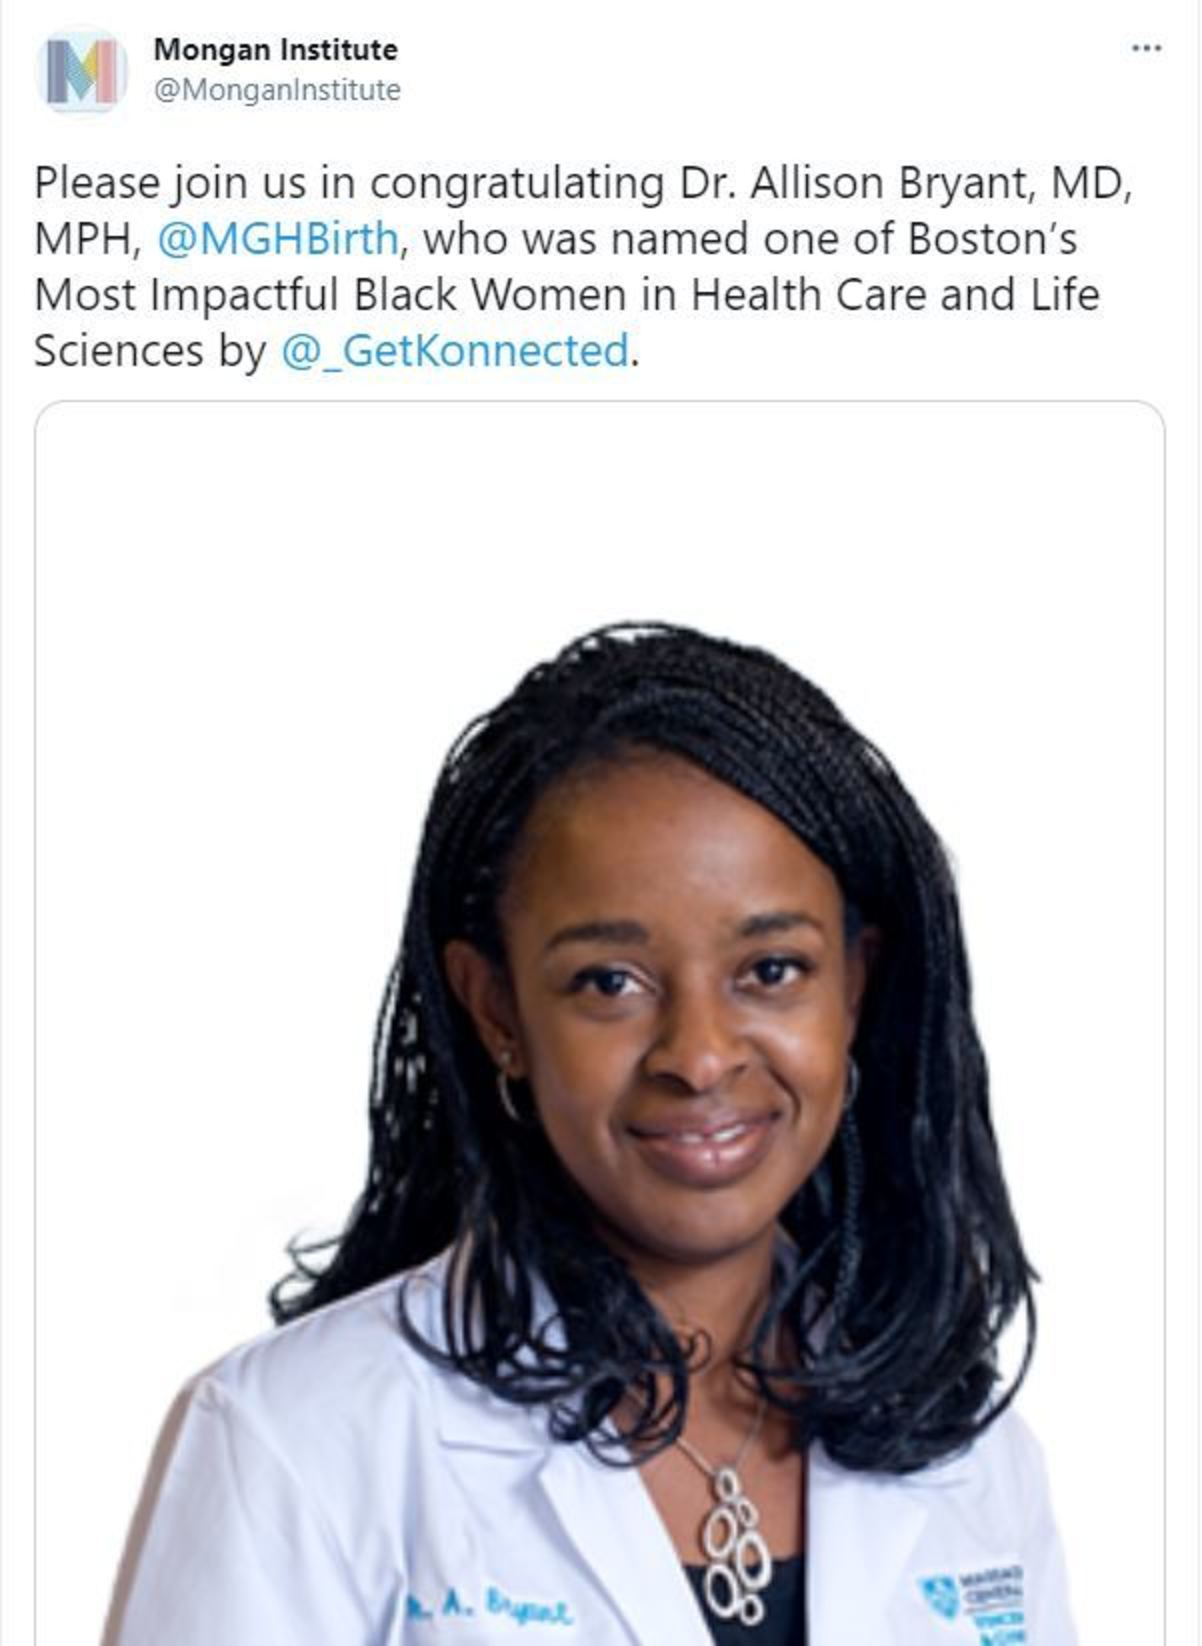 Please join us in congratulating Dr. Allison Bryant, MD, MPH, @MGHBirth , who was named one of Boston's Most Impactful Black Women in Health Care and Life Sciences by @_GetKonnected .